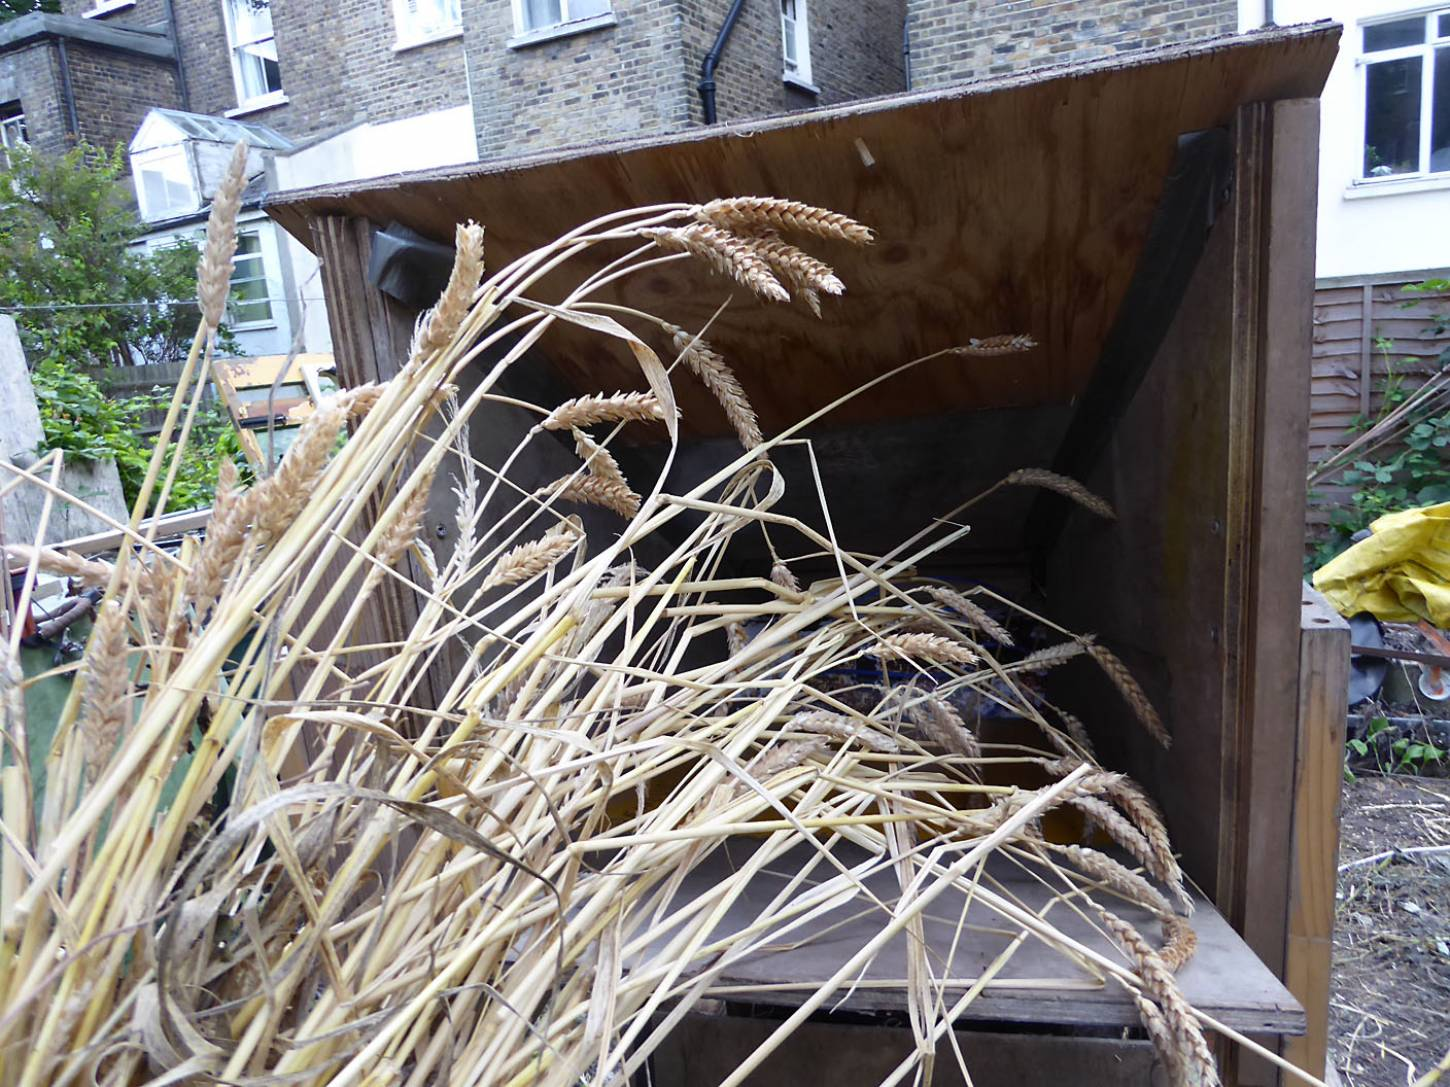 threshing the London allotment grown <a href='http://www.wheat-gateway.org.uk/hub.php?ID=57' target='_blank'>Red Stettin</a> - 5:45pm&nbsp;4<sup>th</sup>&nbsp;Aug.&nbsp;'17  <a href='http://maps.google.com/?t=h&q=51.470769,-0.103636&z=18&output=embed' target=_blank><img src='http://www.brockwell-bake.org.uk/img/marker.png' style='border:none;vertical-align:top' height=16px></a>